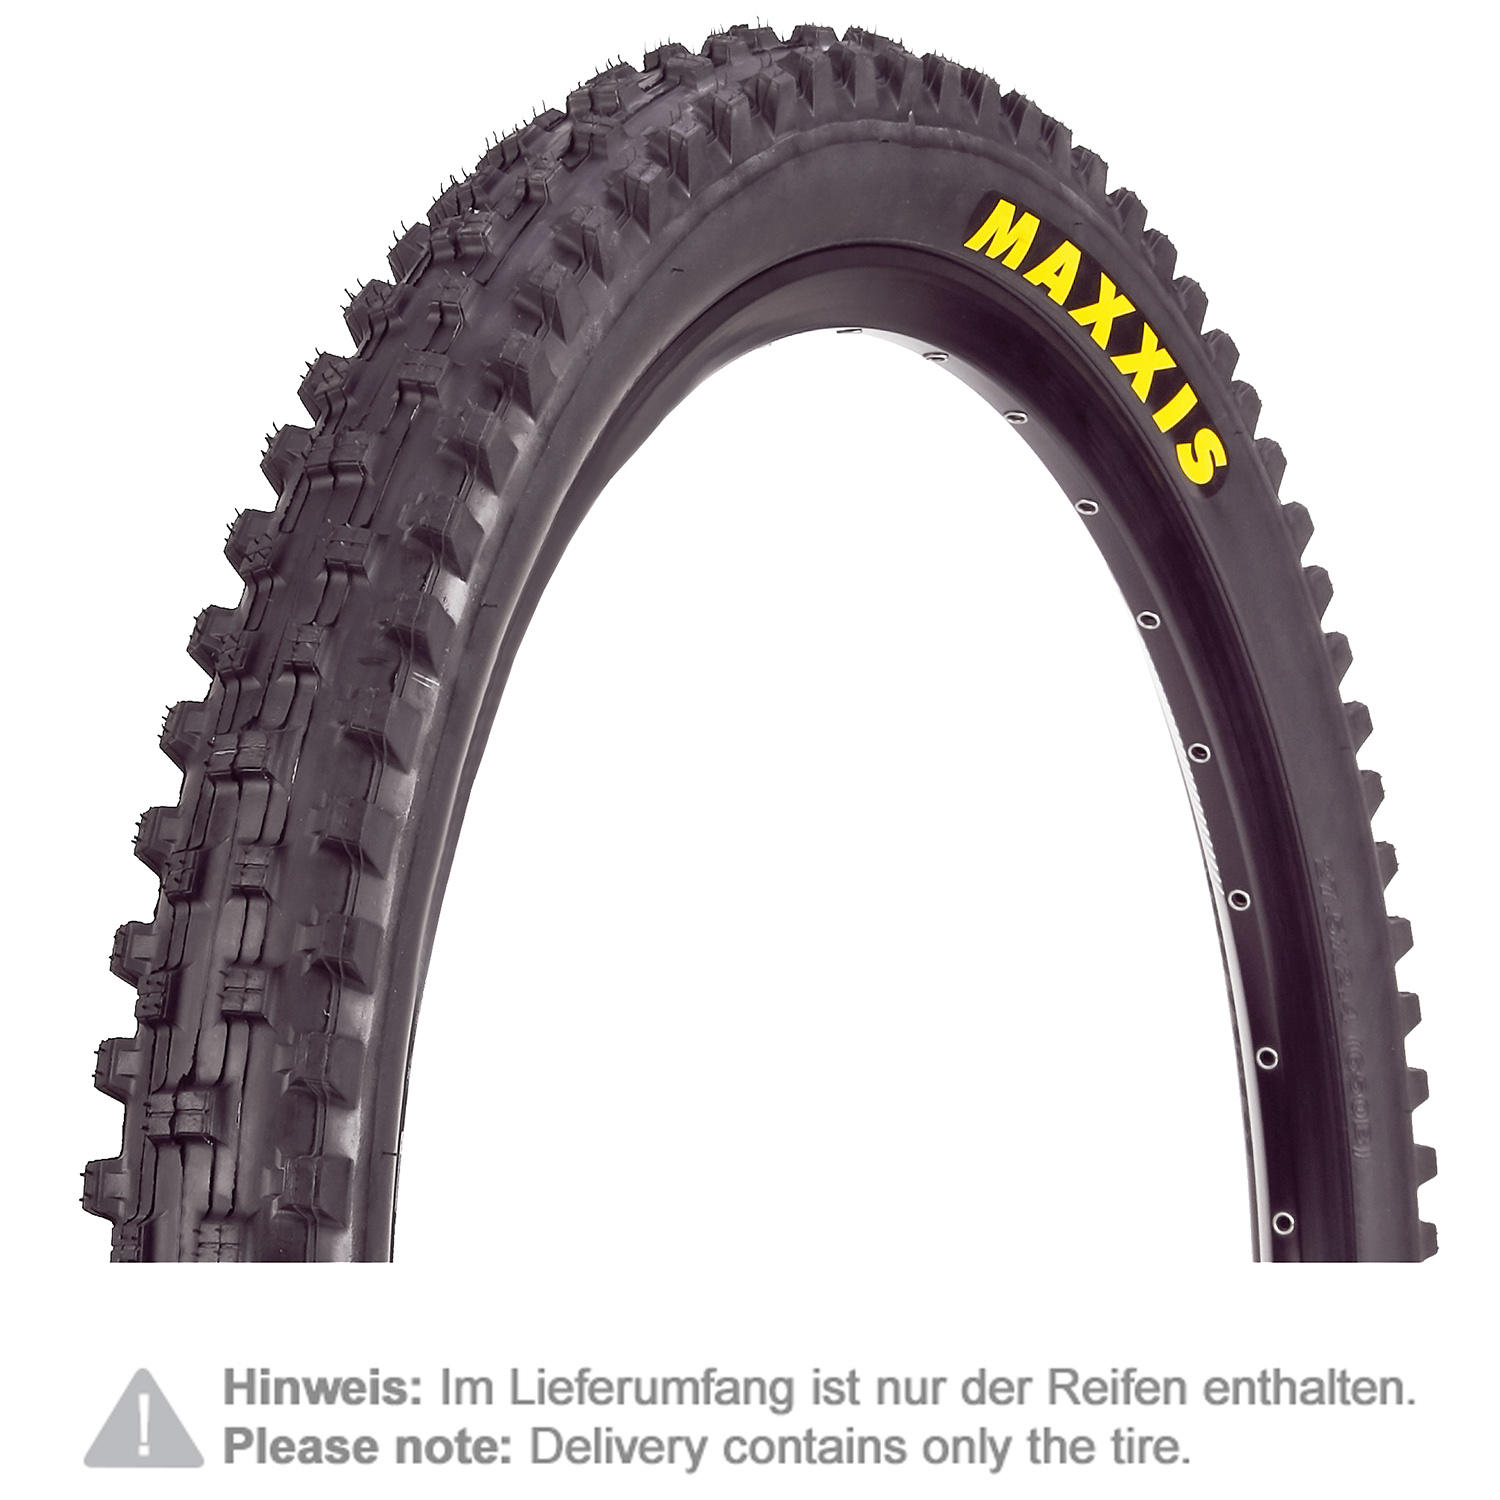 maxxis mtb reifen shorty schwarz 27 5 x zoll super. Black Bedroom Furniture Sets. Home Design Ideas